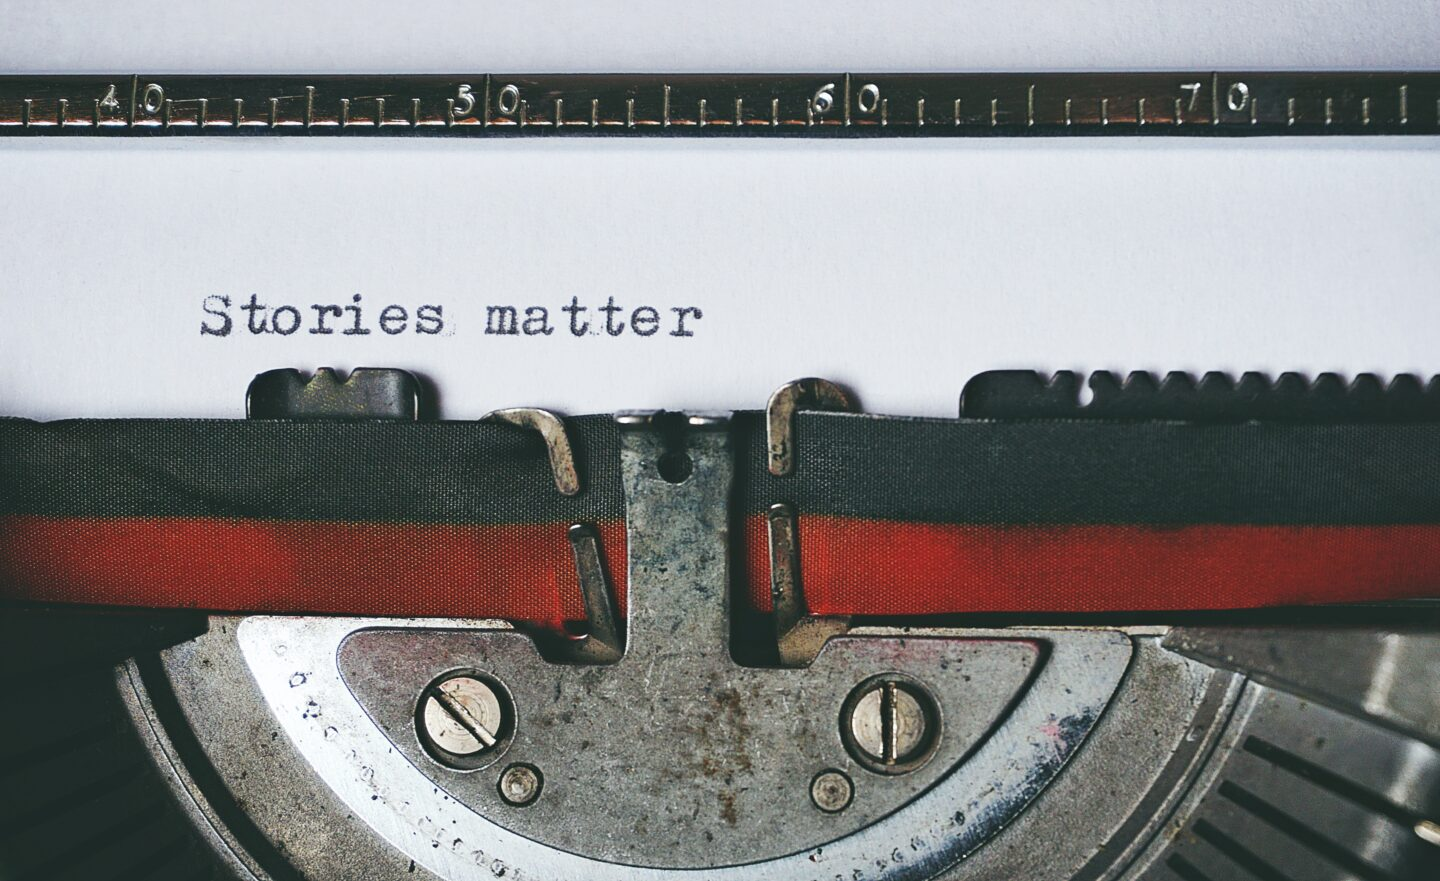 The tyewriter with paper and printed words stories matter